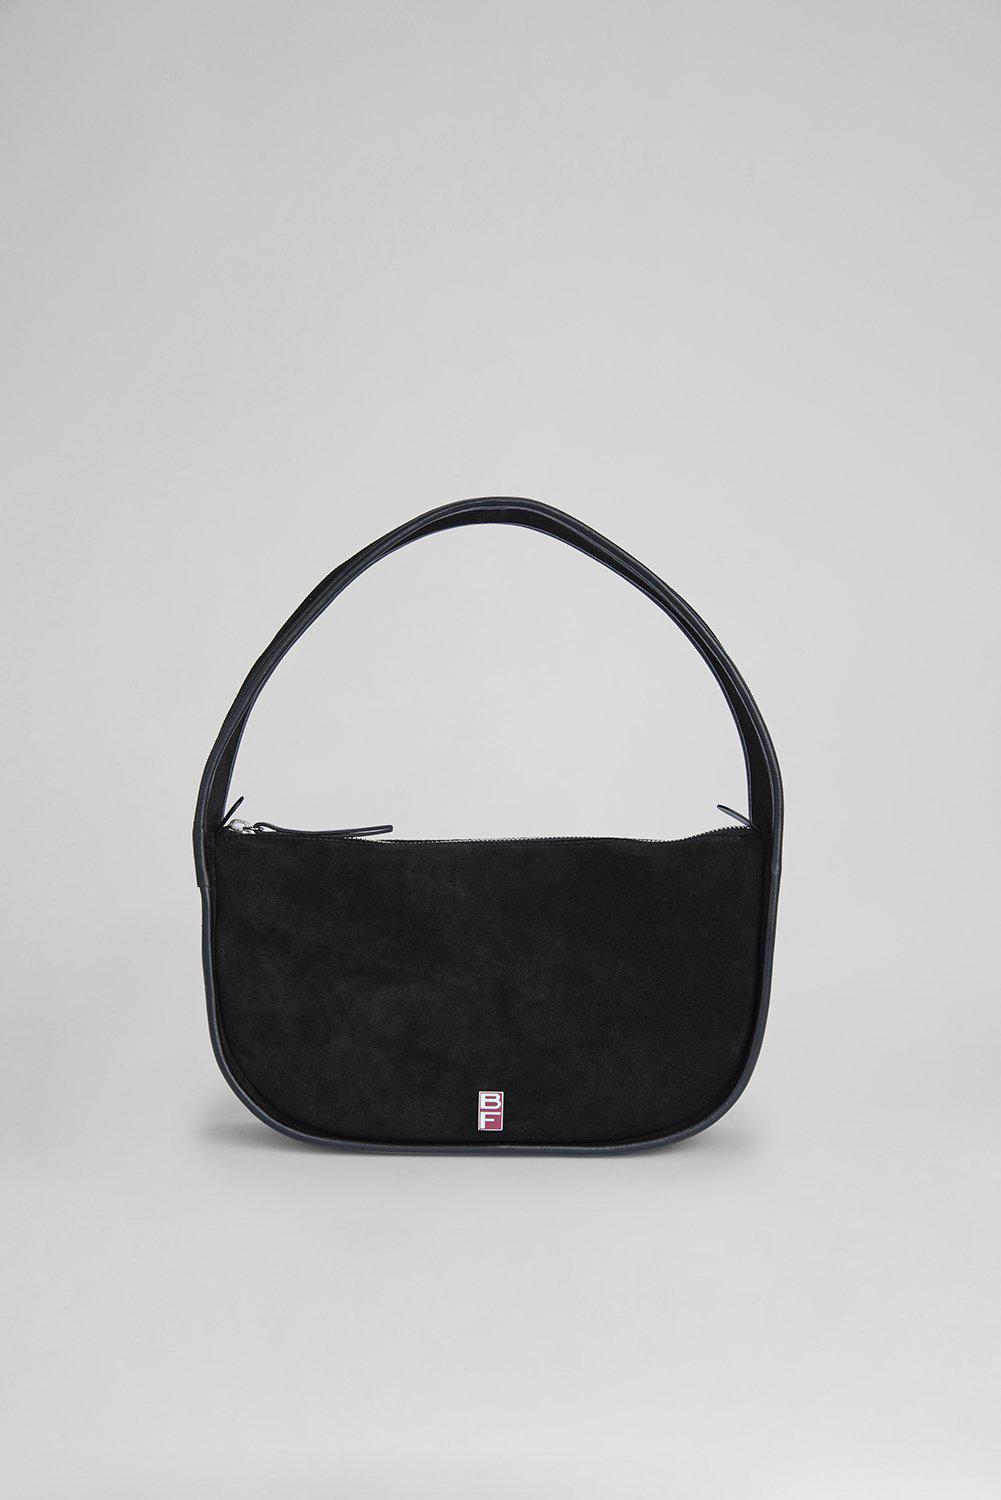 Mechi Black Suede Leather